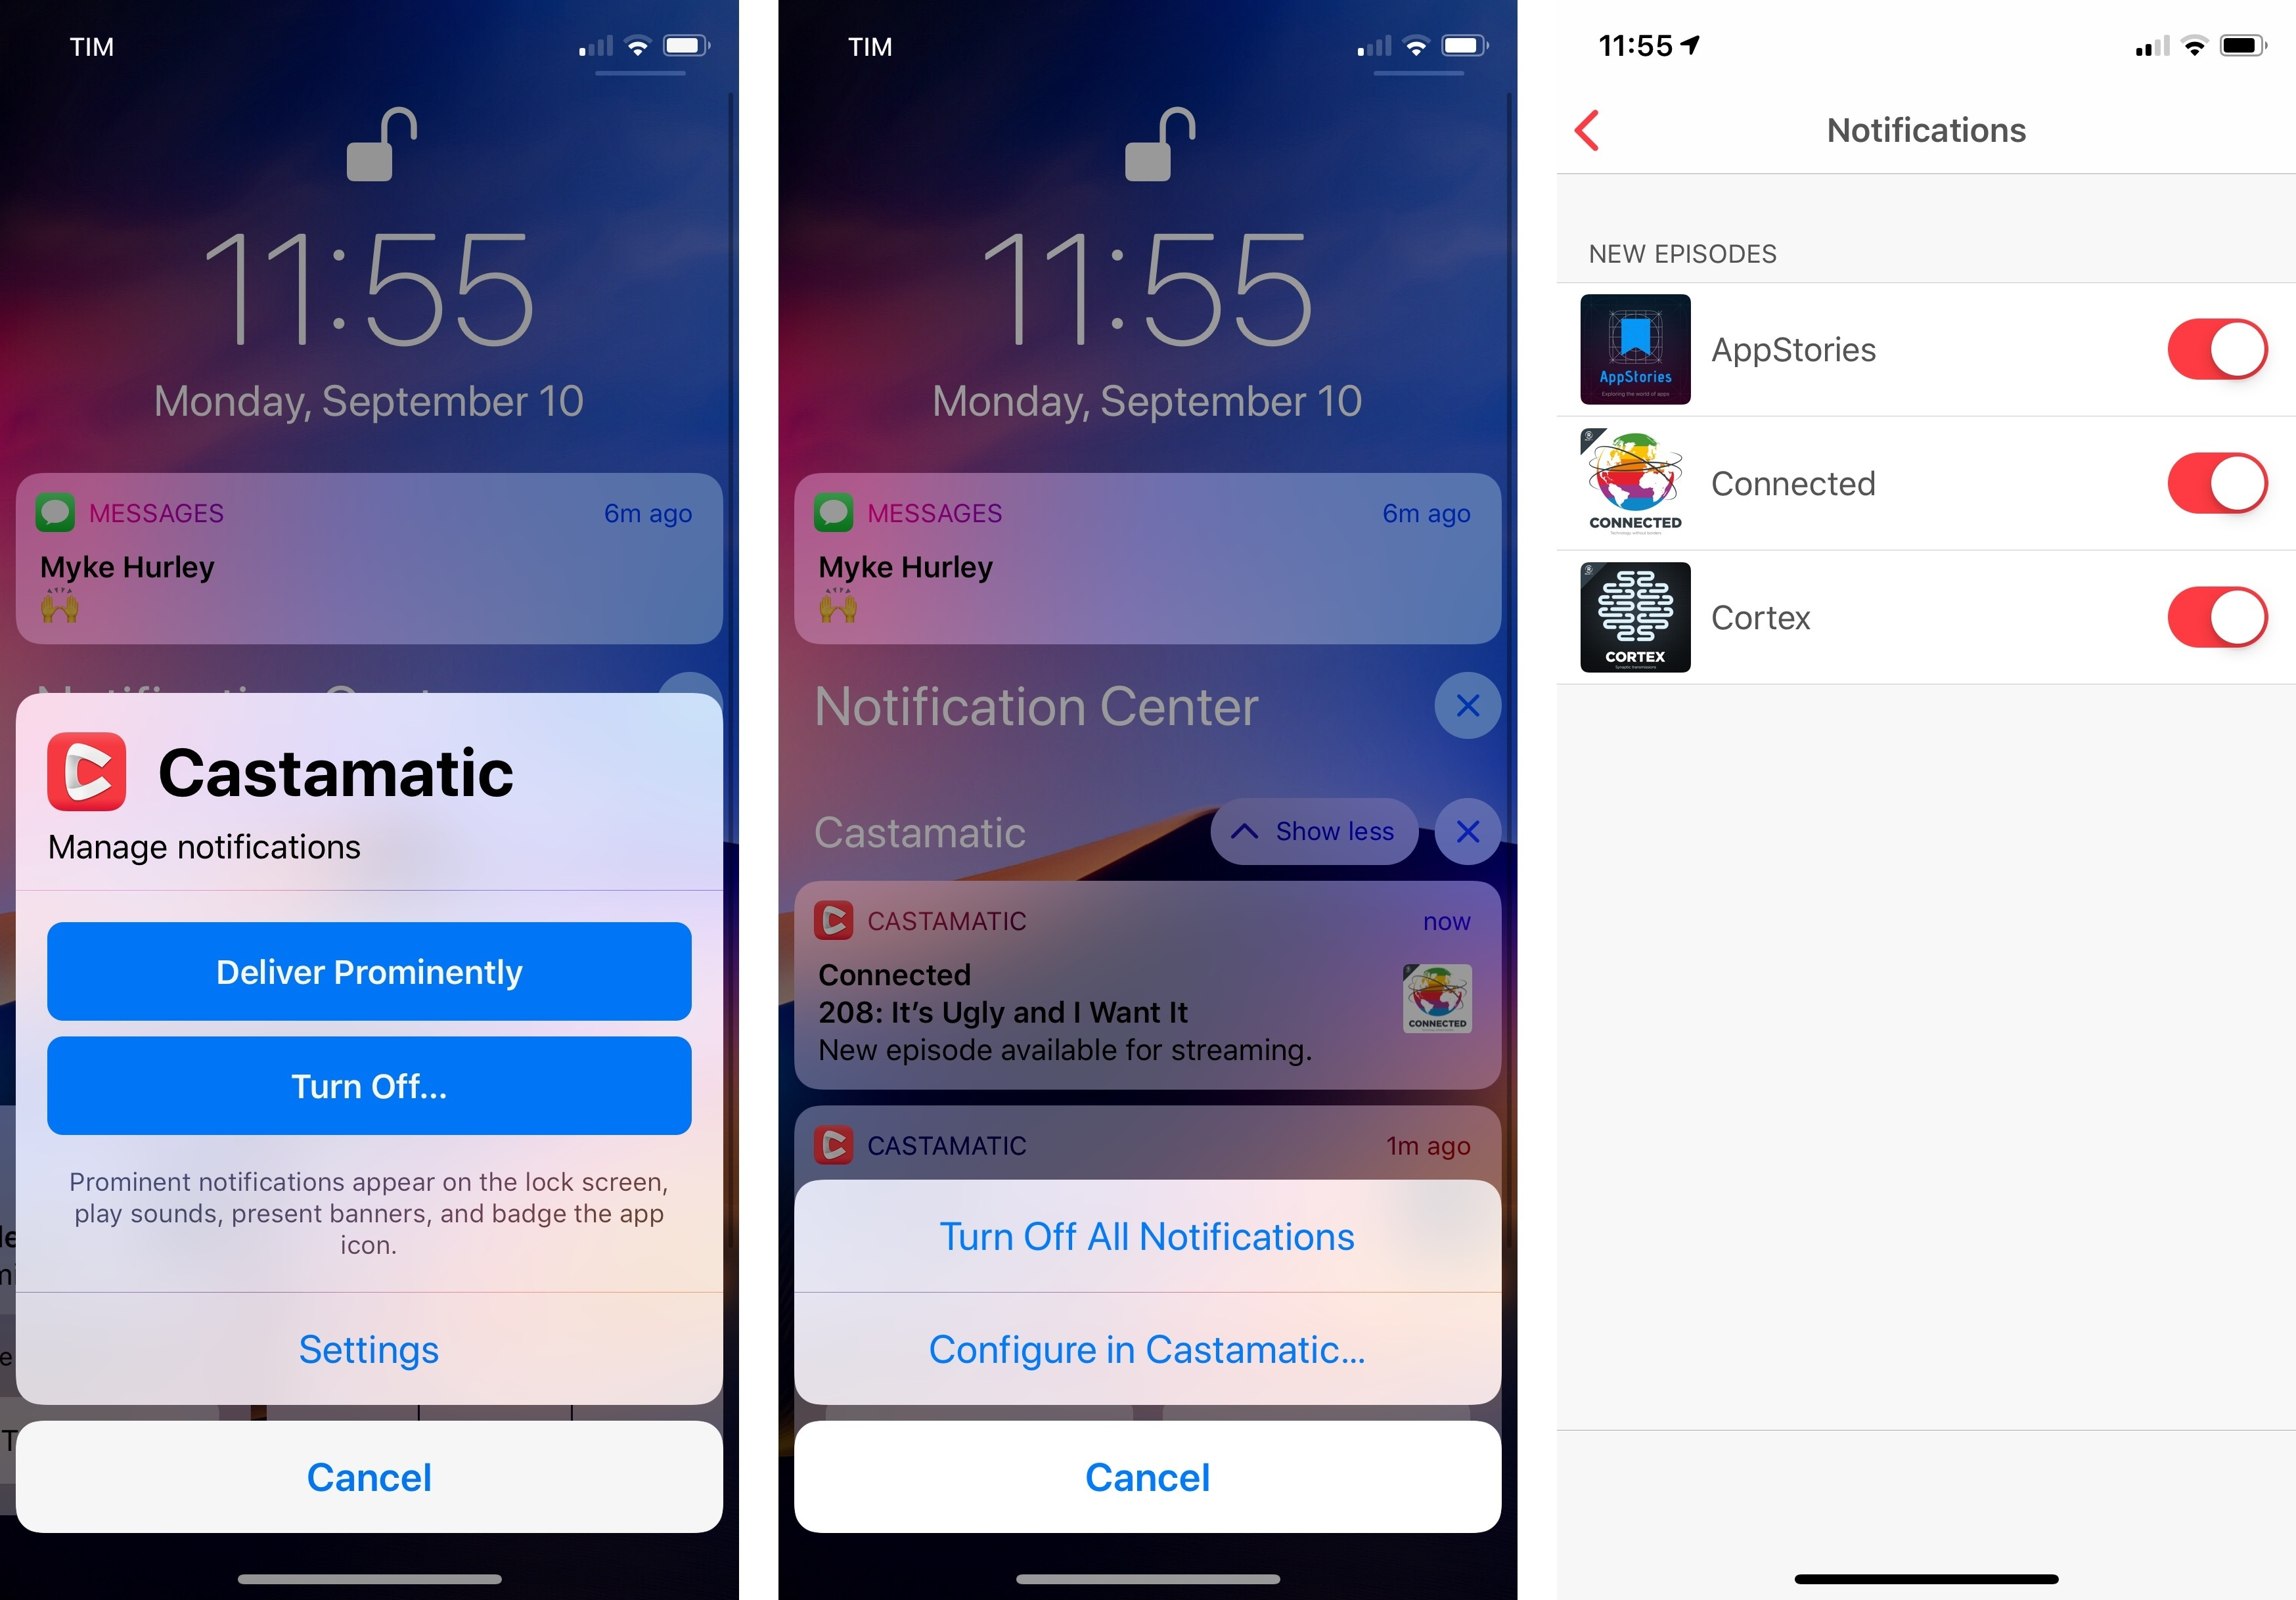 Deliver Quietly becomes Deliver Prominently for notifications that already go straight to Notification Center. In the example above, Castamatic deep-links its notification settings to a screen inside the app.